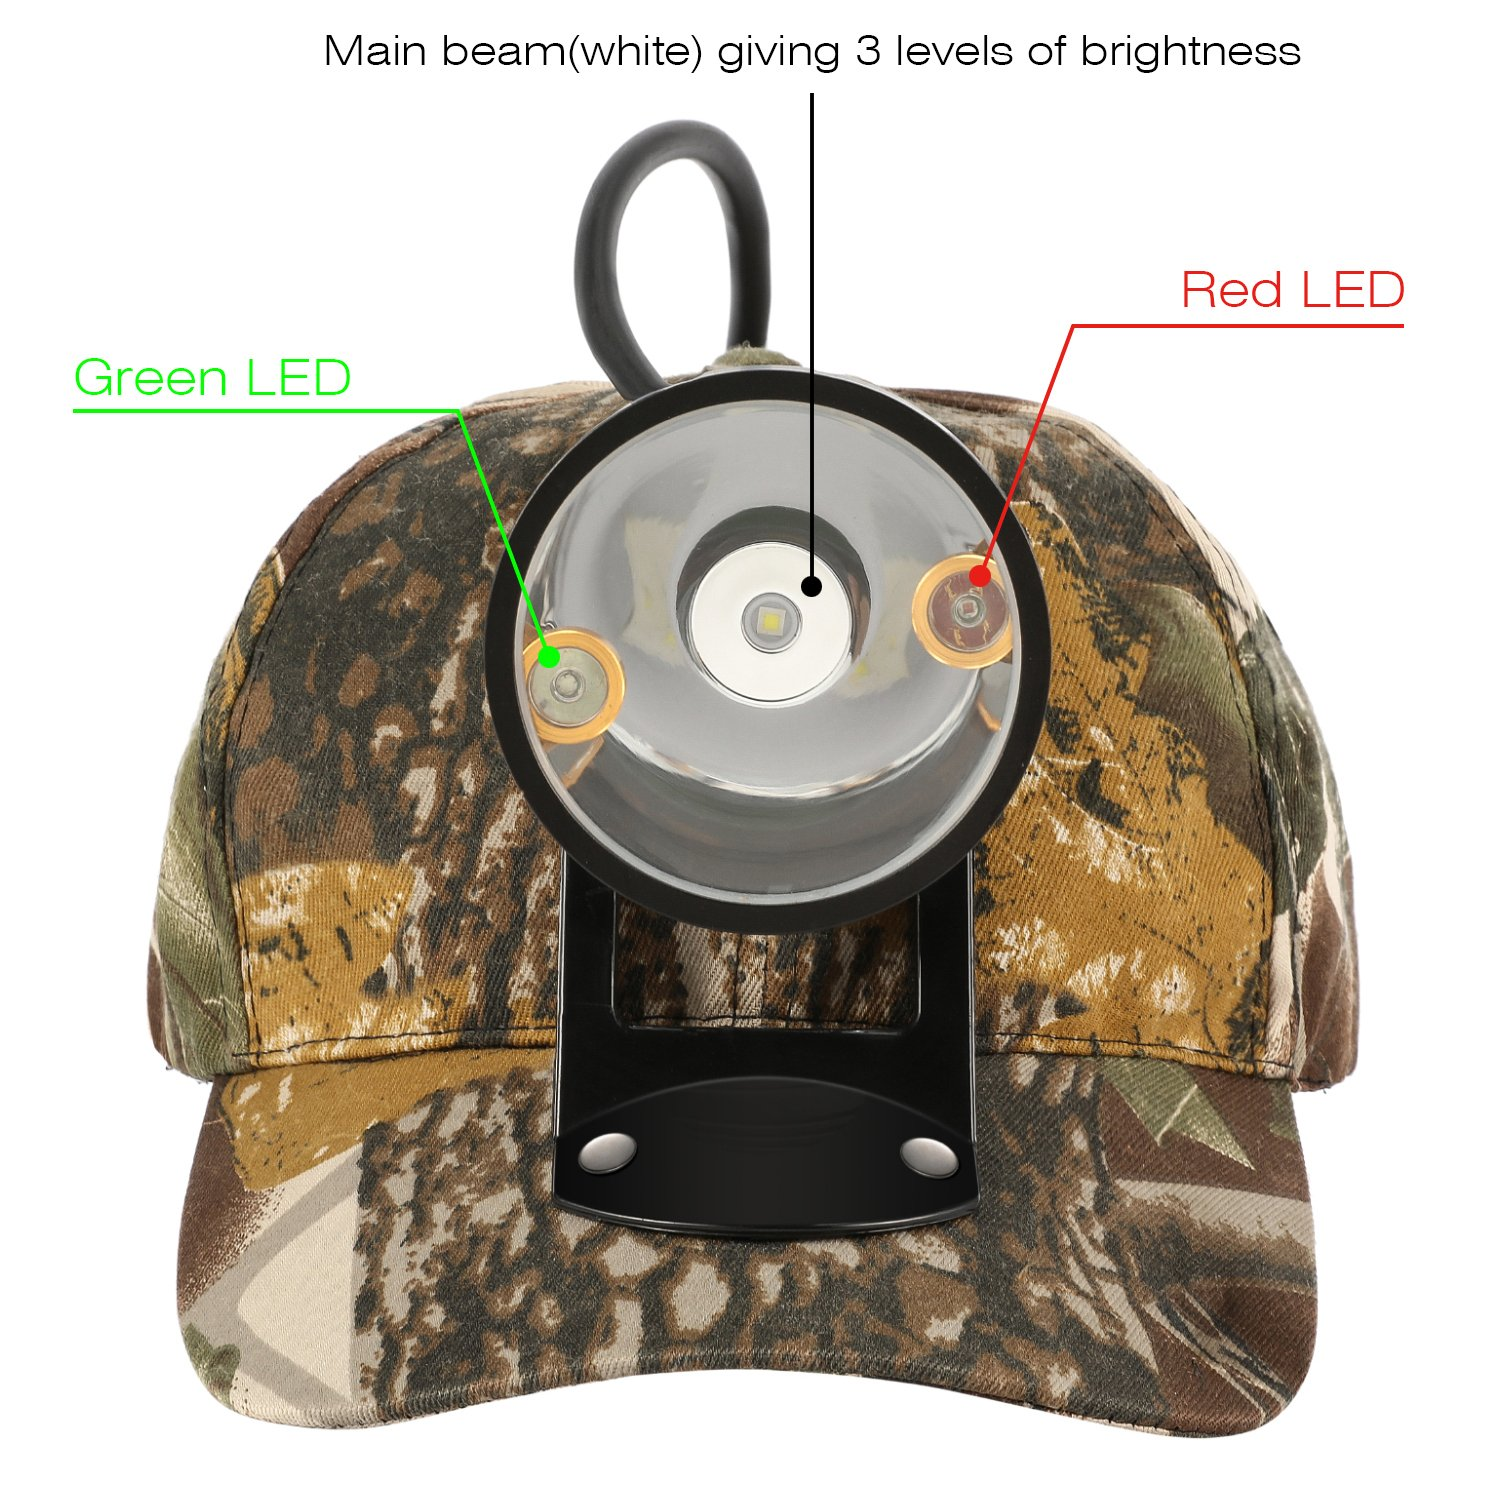 Kohree CREE 80000 LUX LED Coyote Hog Coon Hunting Light, Rechargeable Predator Hunting, 3 LED Cap Light, 5 Position Switch, Multiple Colors White Red Green Soft Cap